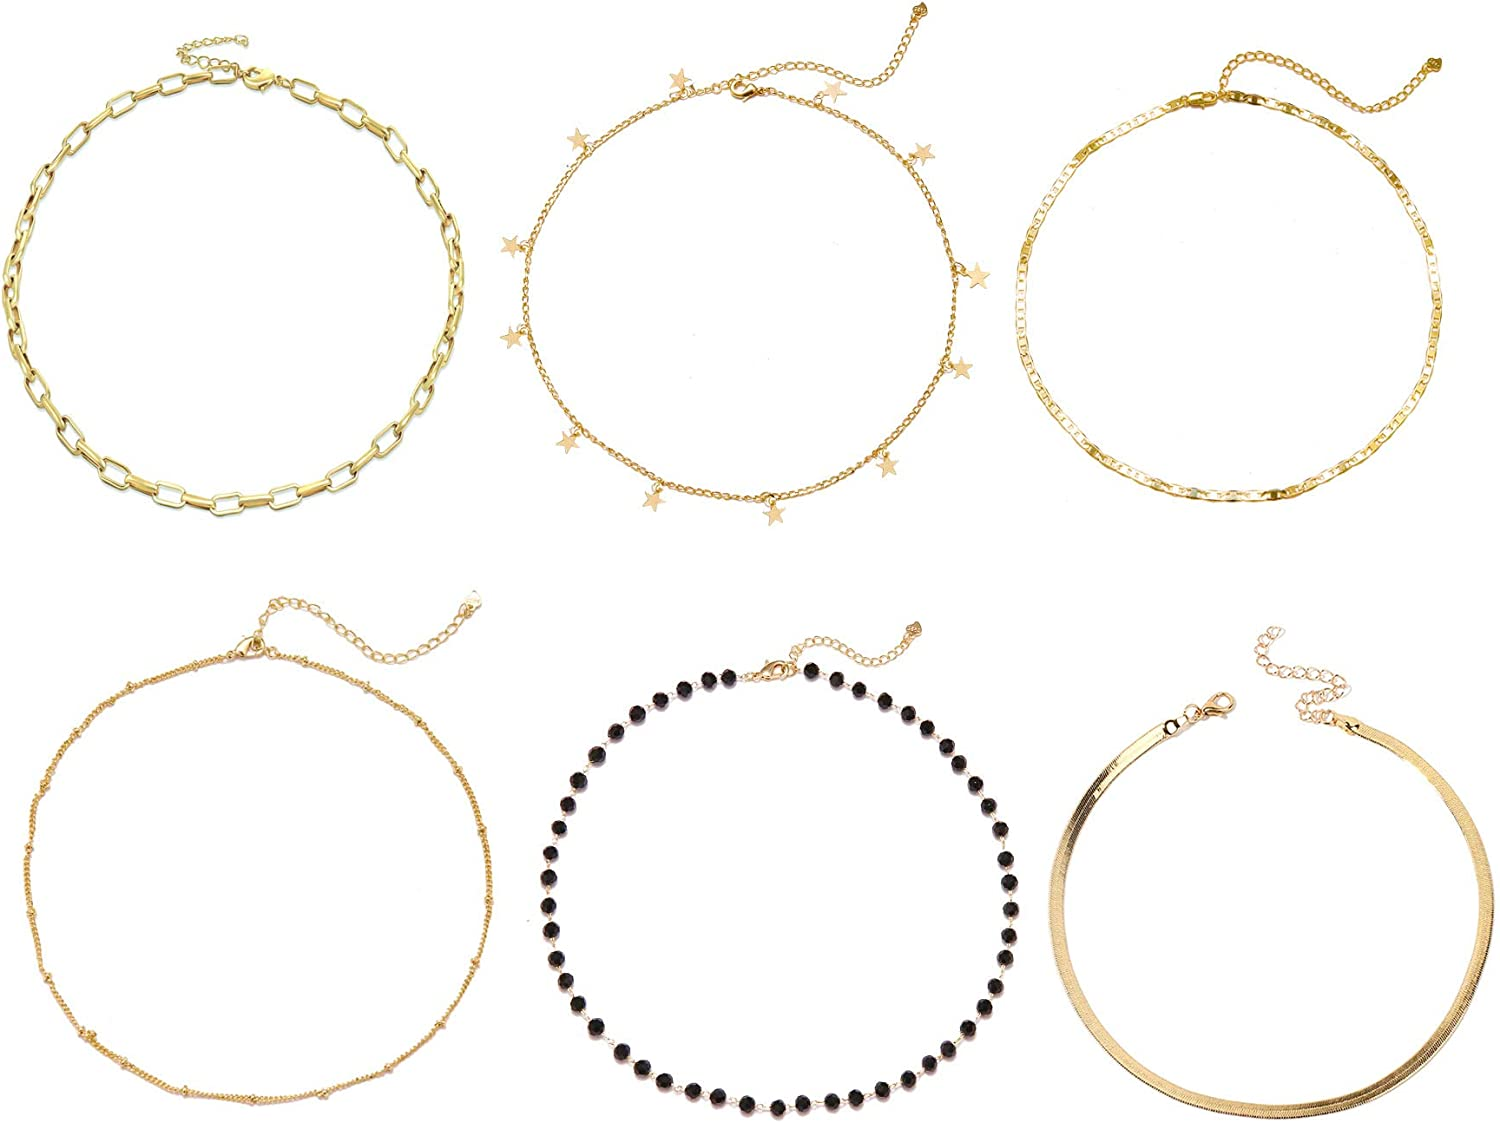 6Pcs Gold Choker Necklace Set for Women Paperclip Chain necklace Star Bead Circle Cuban Choker Jewerly for Girl